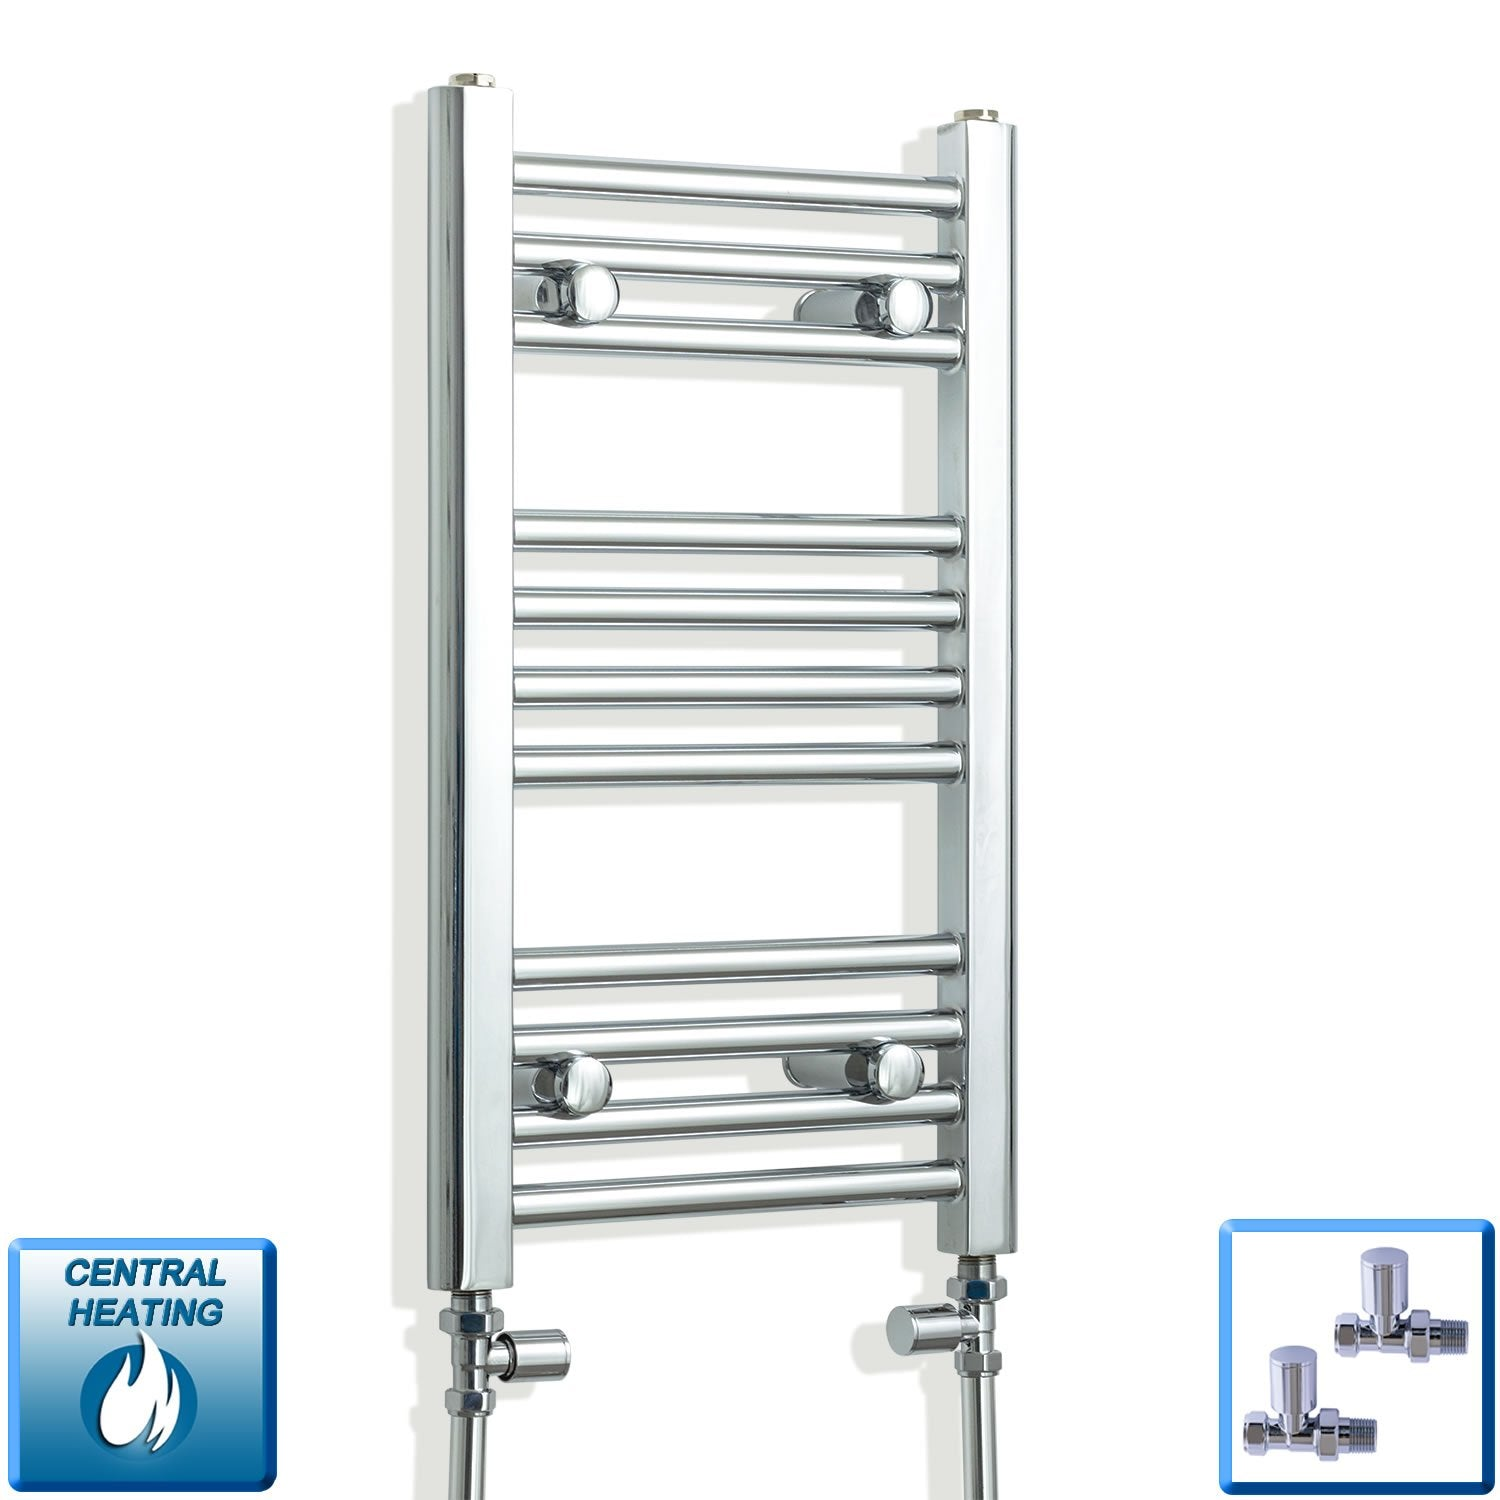 350mm Wide 600mm High Flat Chrome Heated Towel Rail Radiator,With Straight Valve